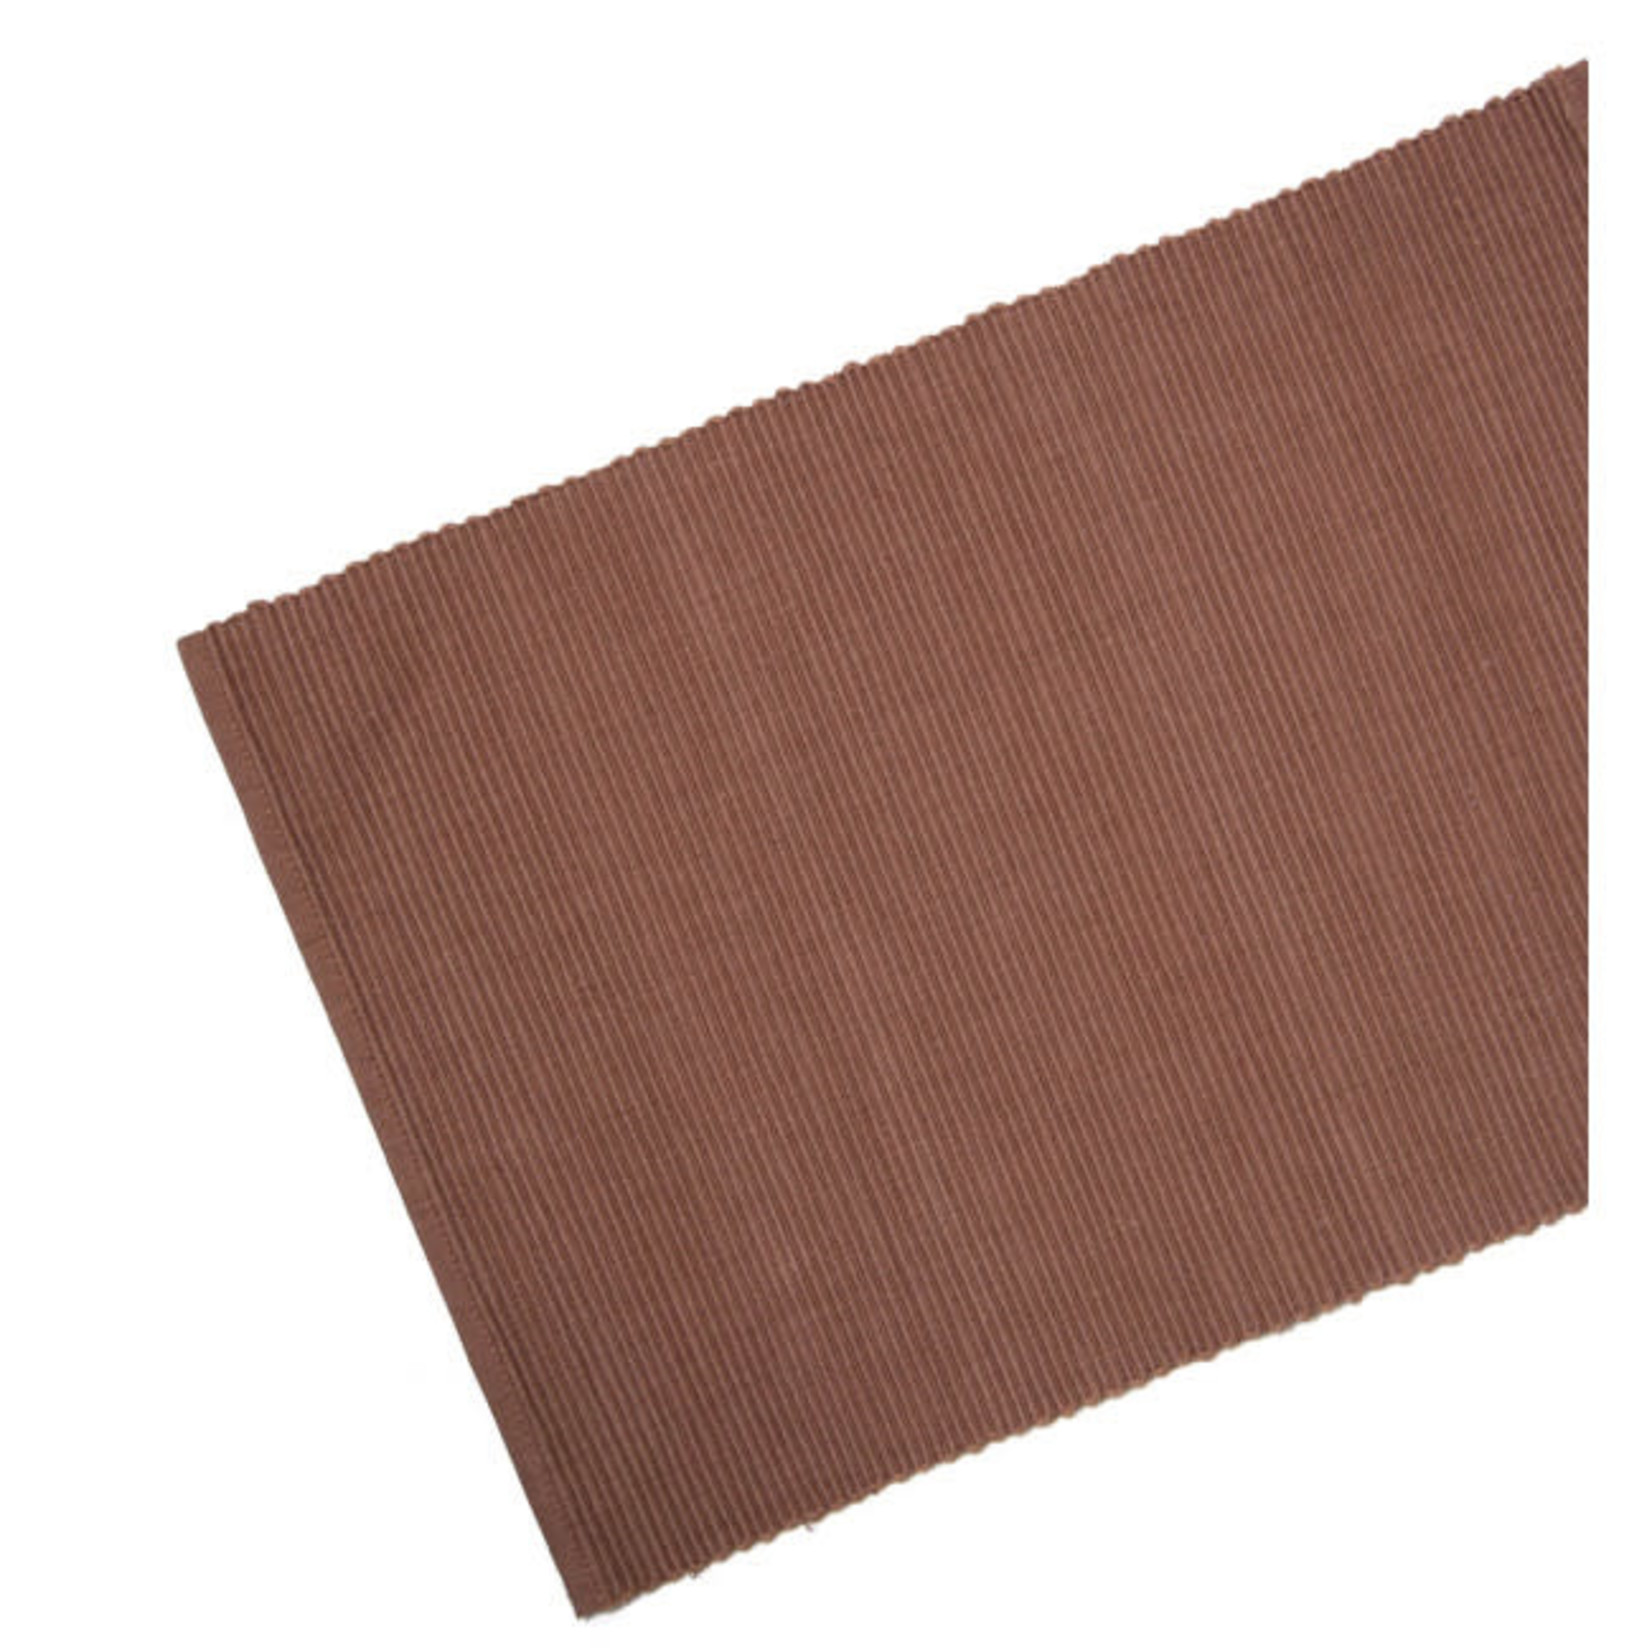 Table Runner Ribbed - Spice Brown